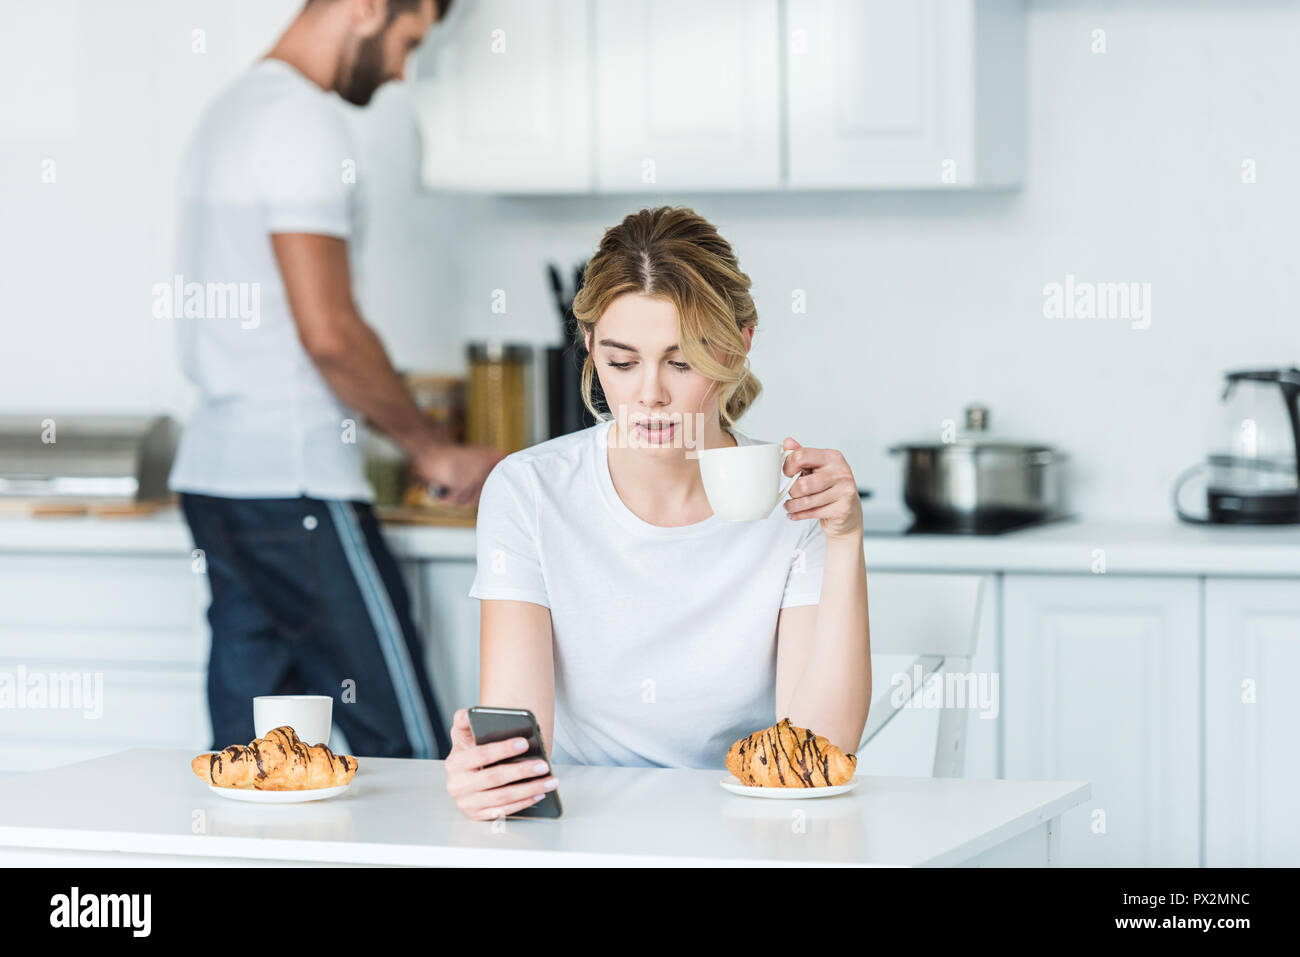 young woman drinking coffee and using smartphone while boyfriend cooking breakfast behind - Stock Image